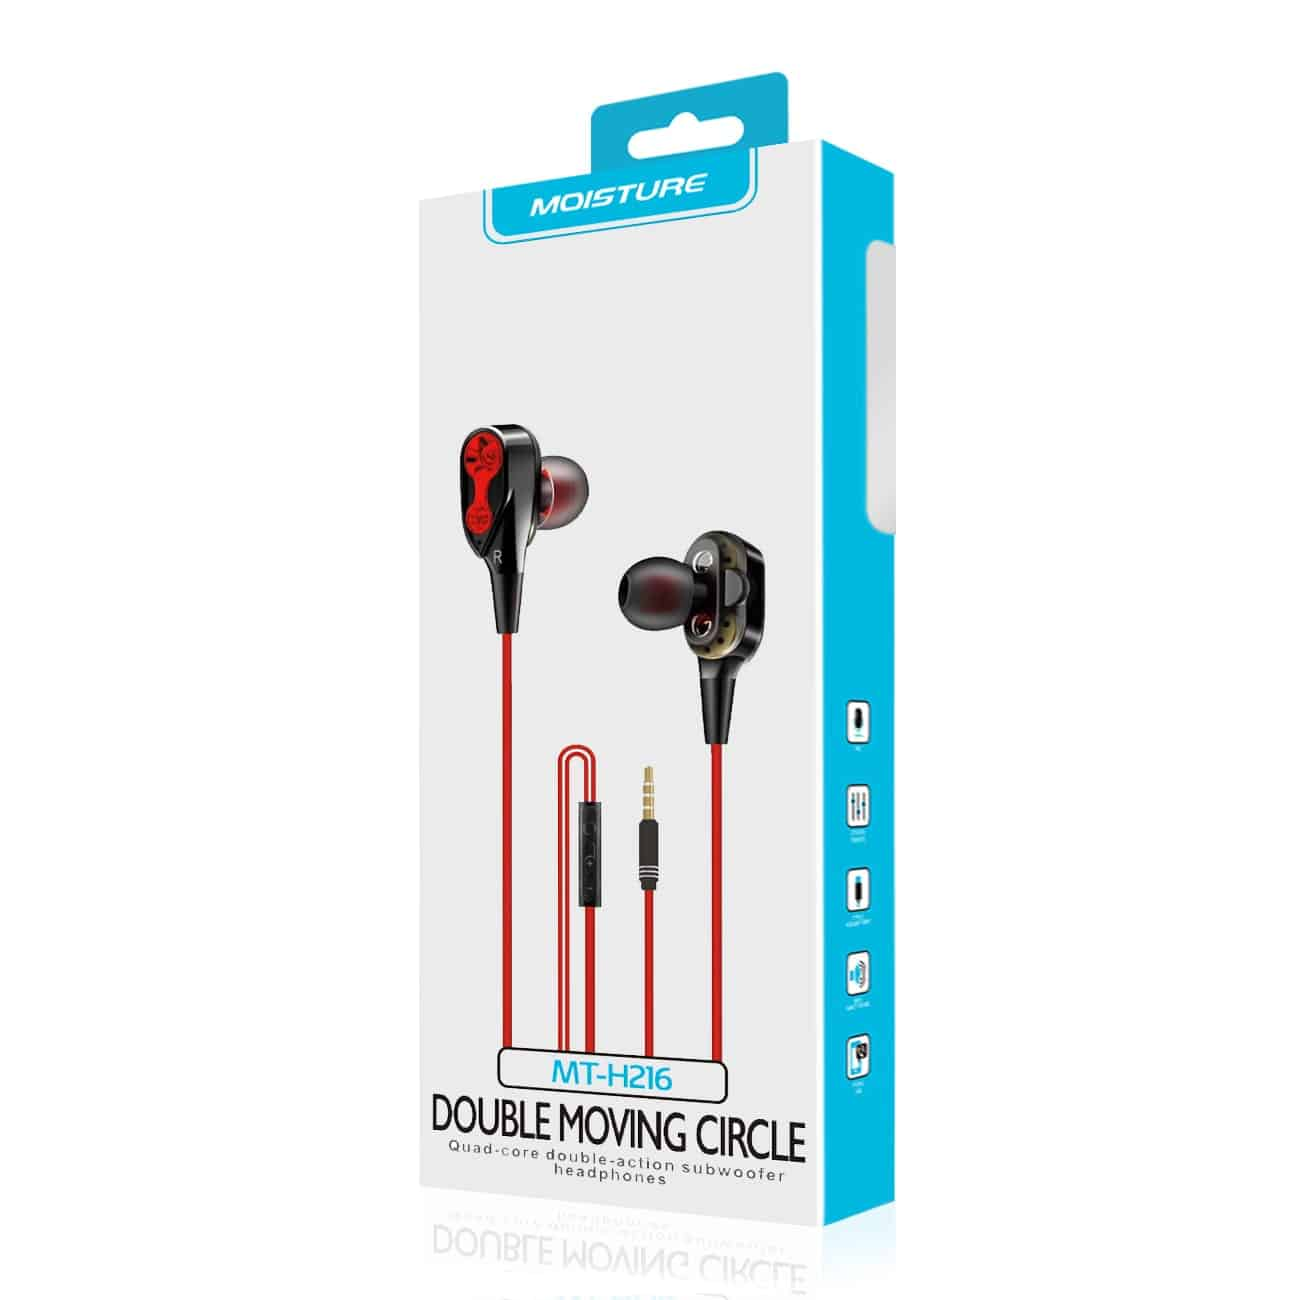 Moisture MT-H216 Earphones In Red and Black